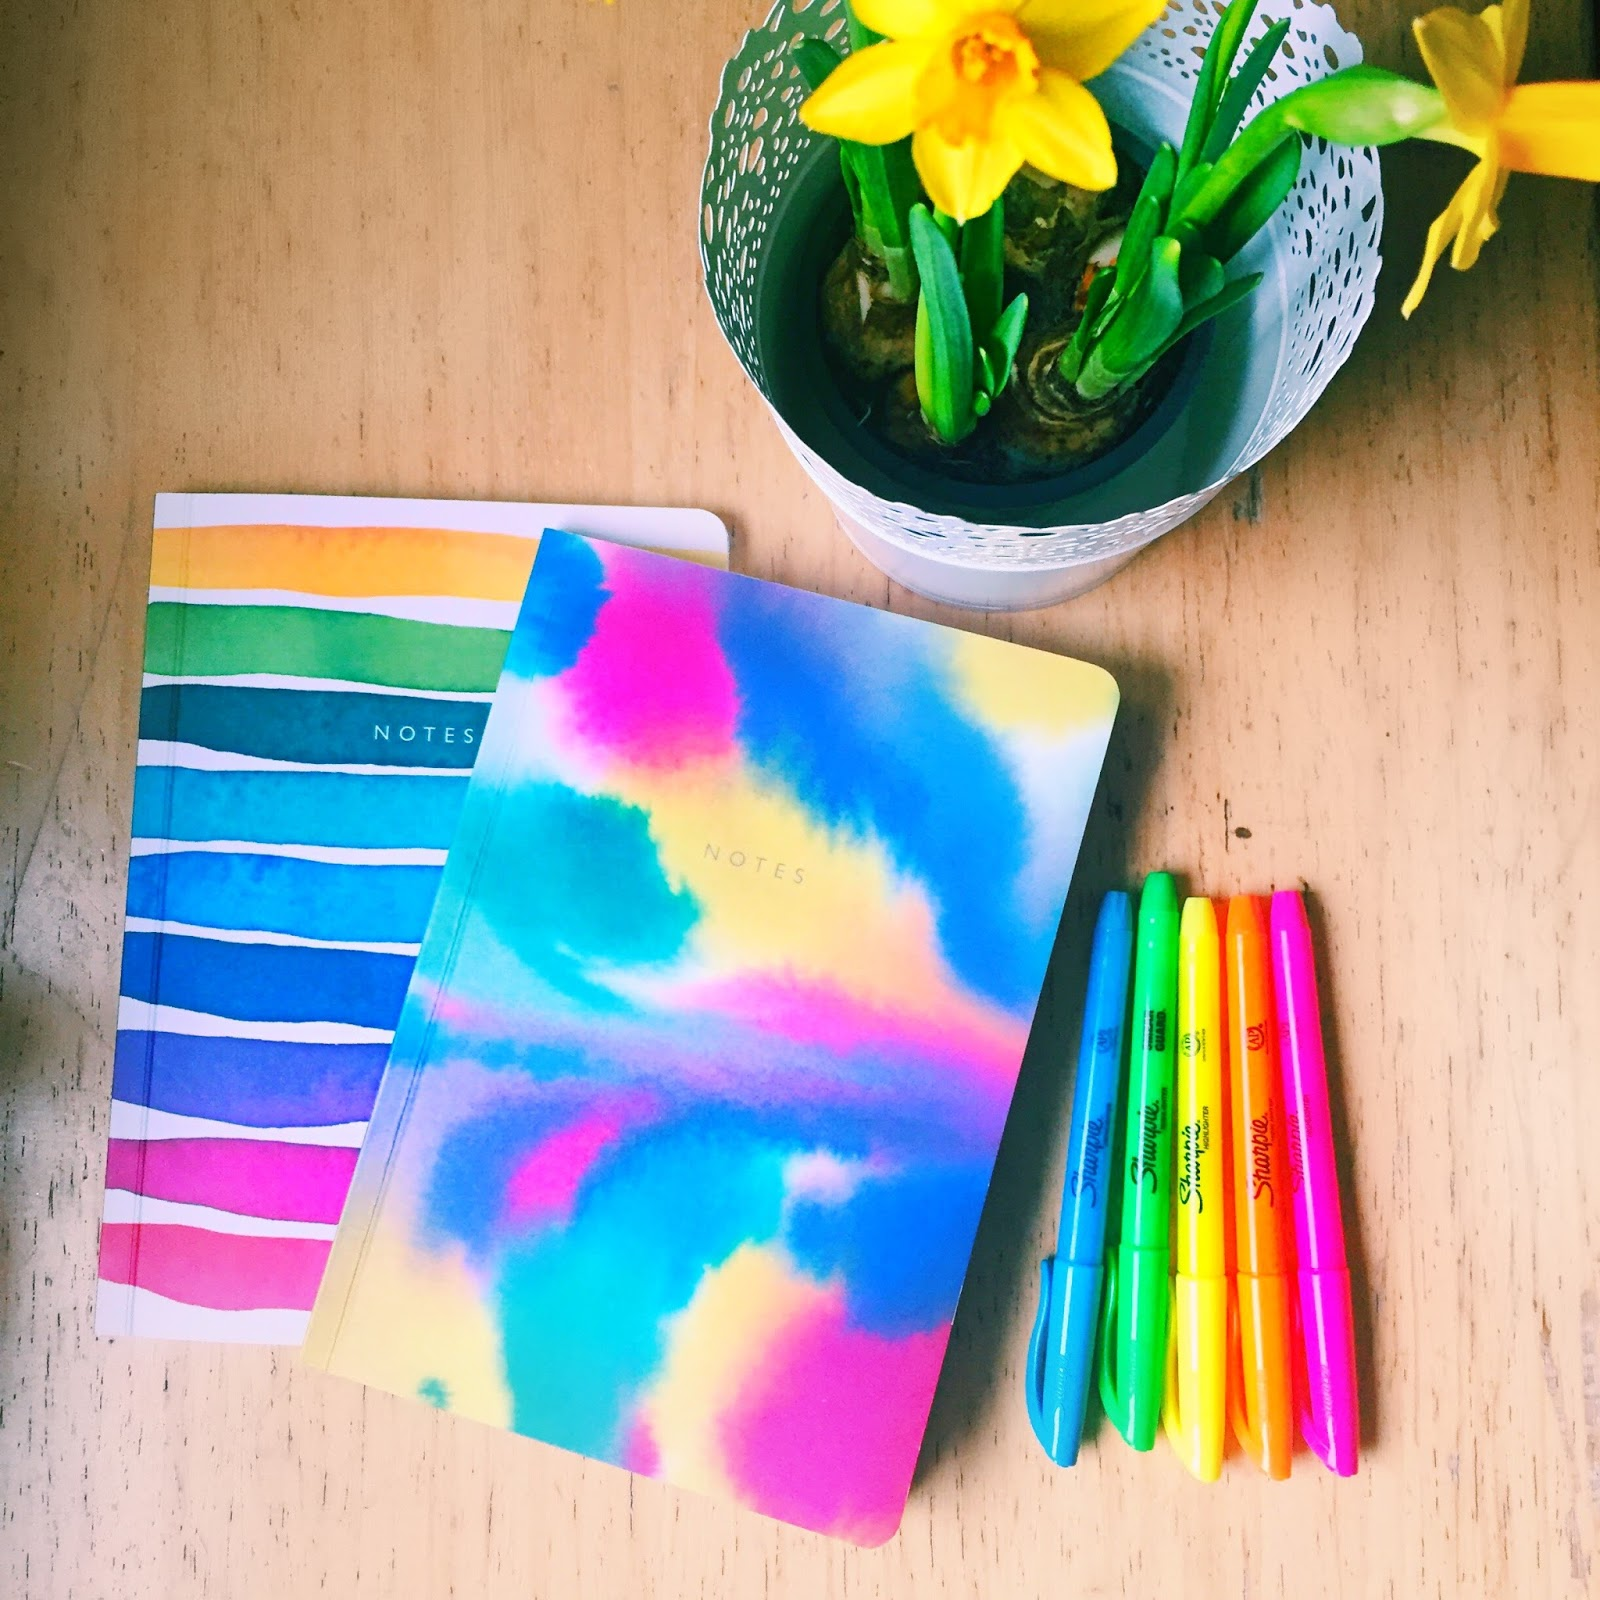 Notebooks-colourful-journaling-health-fitness-sharpies-rainbow-flowers